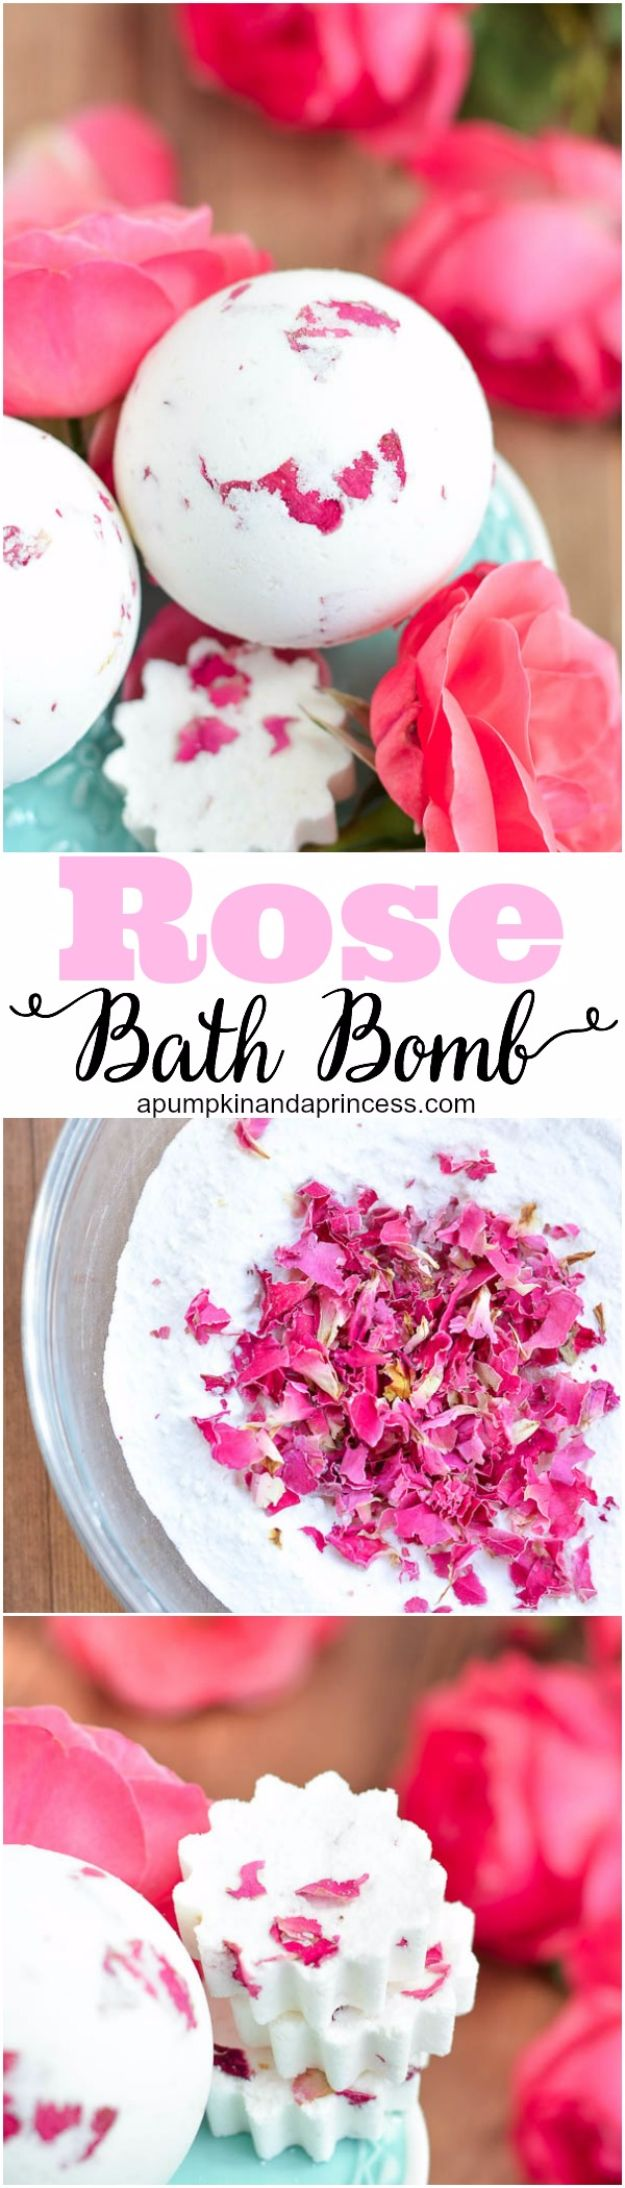 DIY Ideas With Rose Petals - DIY Rose And Milk Bath Bomb - Crafts and DIY Projects, Recipes You Can Make With Rose Petals - Creative Home Decor and Gift Ideas Make Awesome Mothers Day and Christmas Gifts - Crafts and Do It Yourself by DIY JOY http://diyjoy.com/diy-ideas-rose-petals